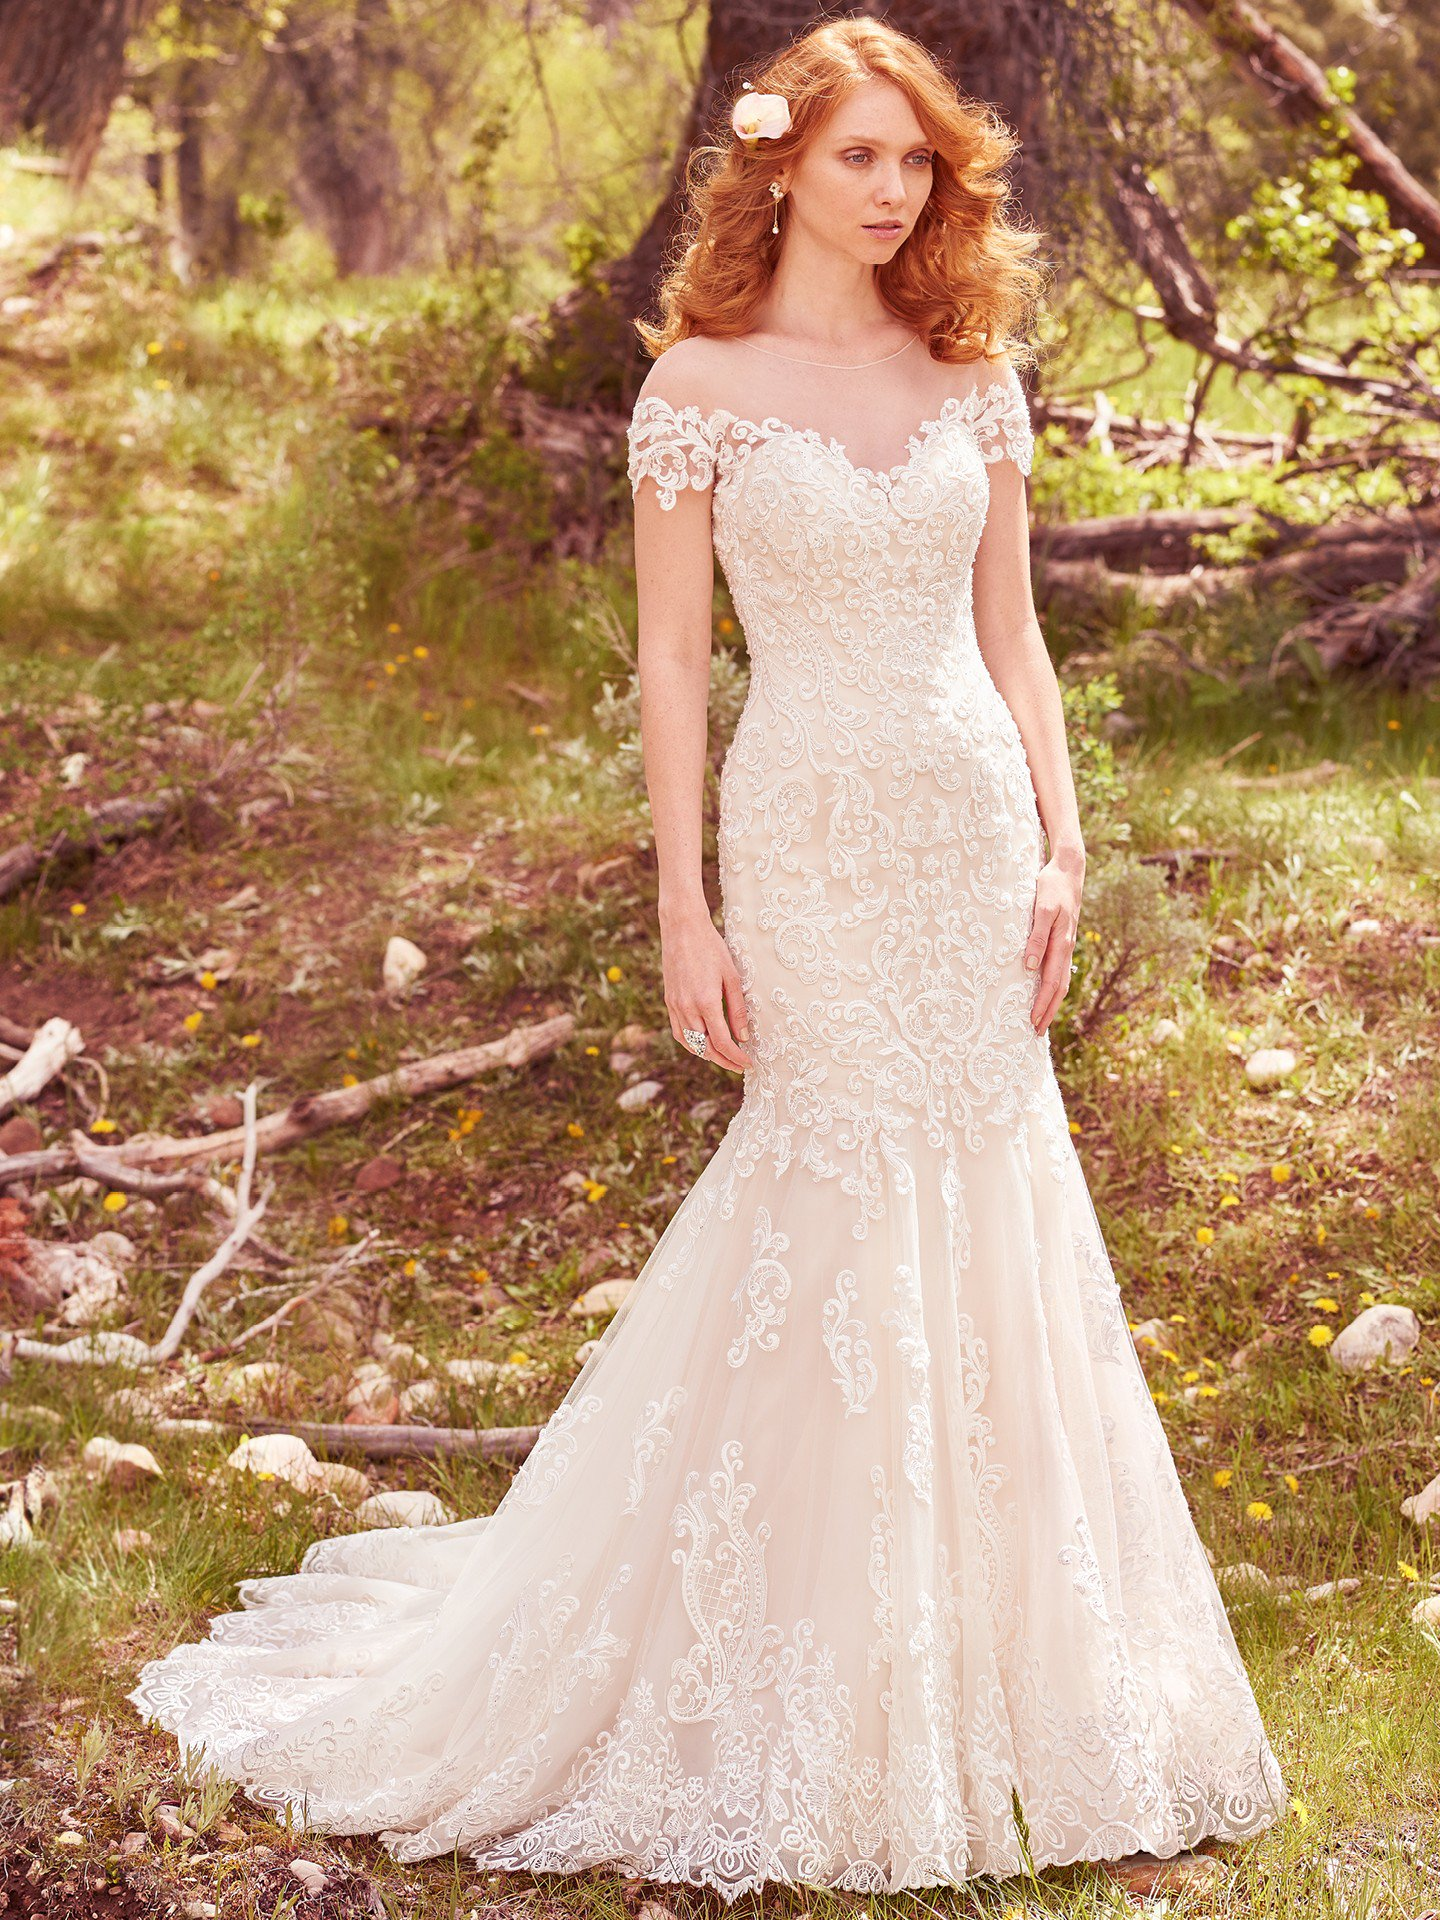 Maggie-Sottero-Wedding-Dress-Marcy-7MT379-Alt1.jpg